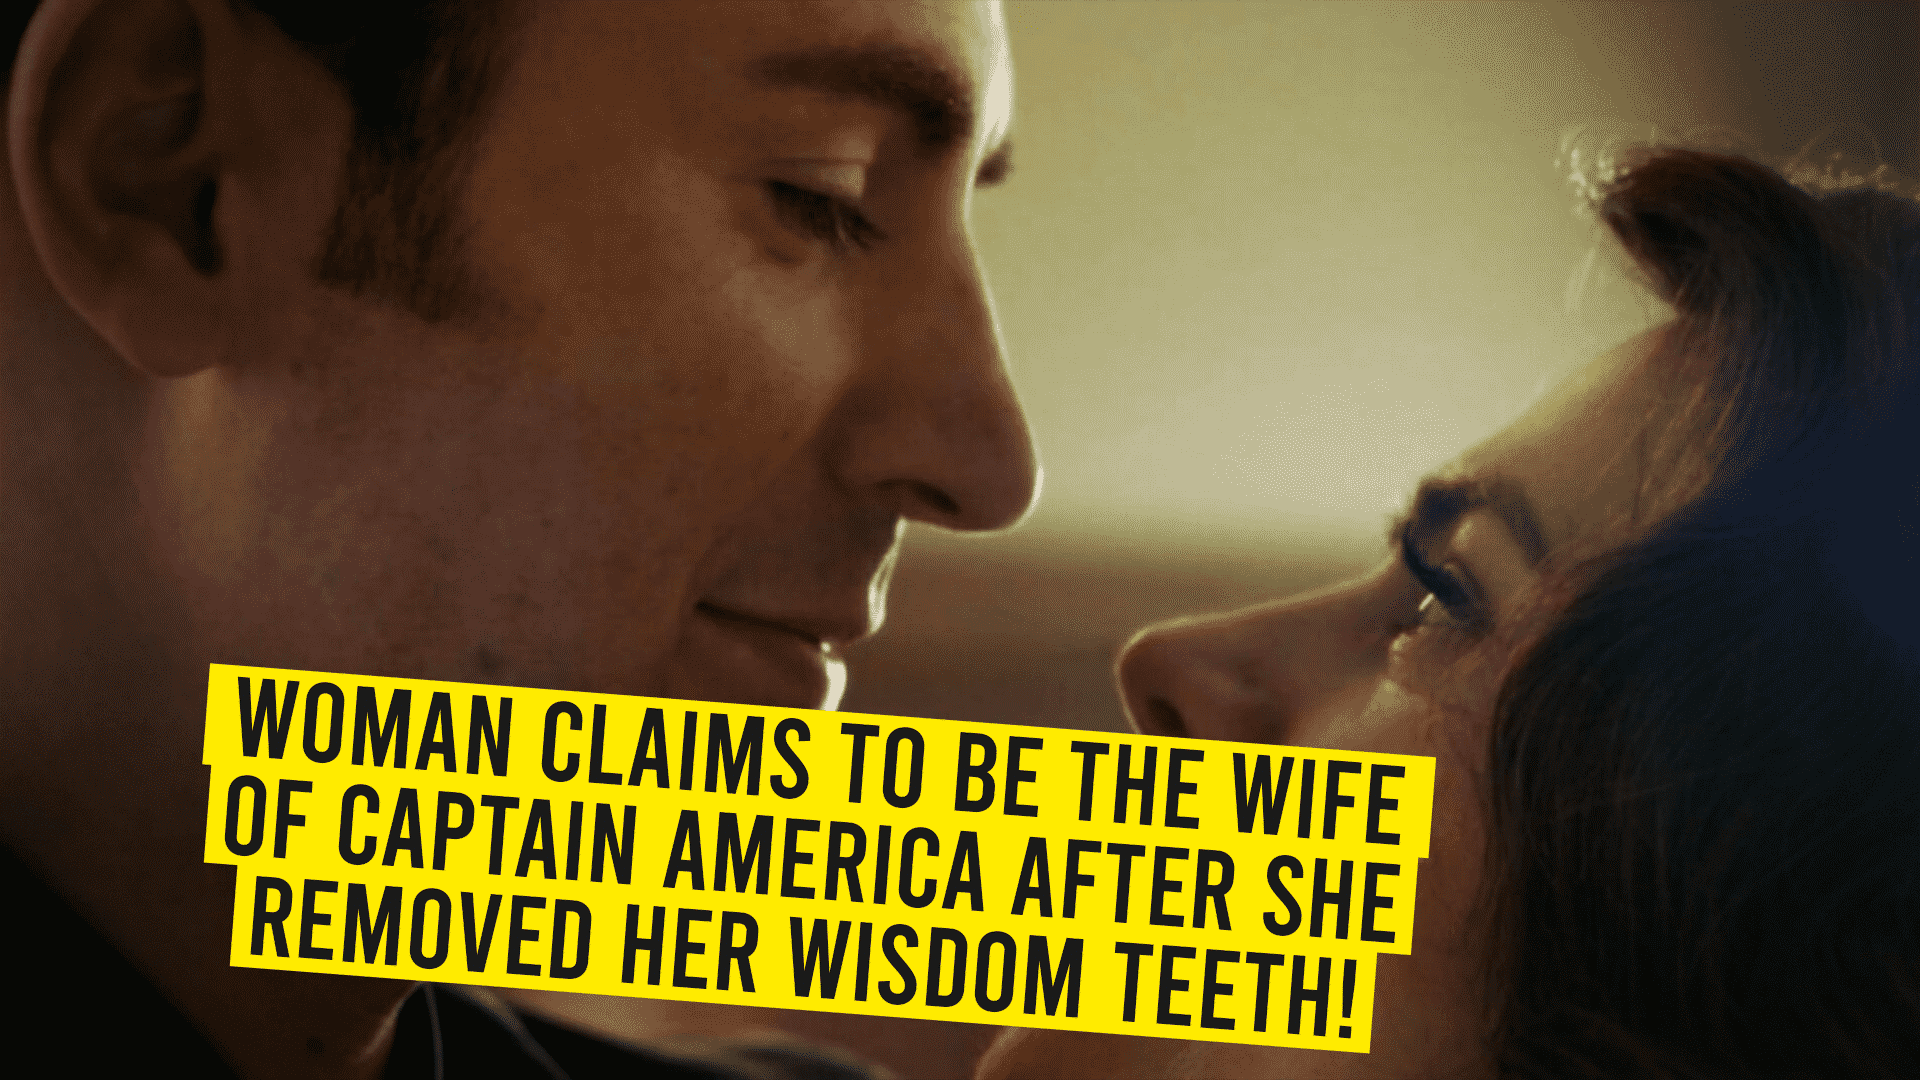 Woman claims to be the wife of Captain America after she removed her wisdom teeth!